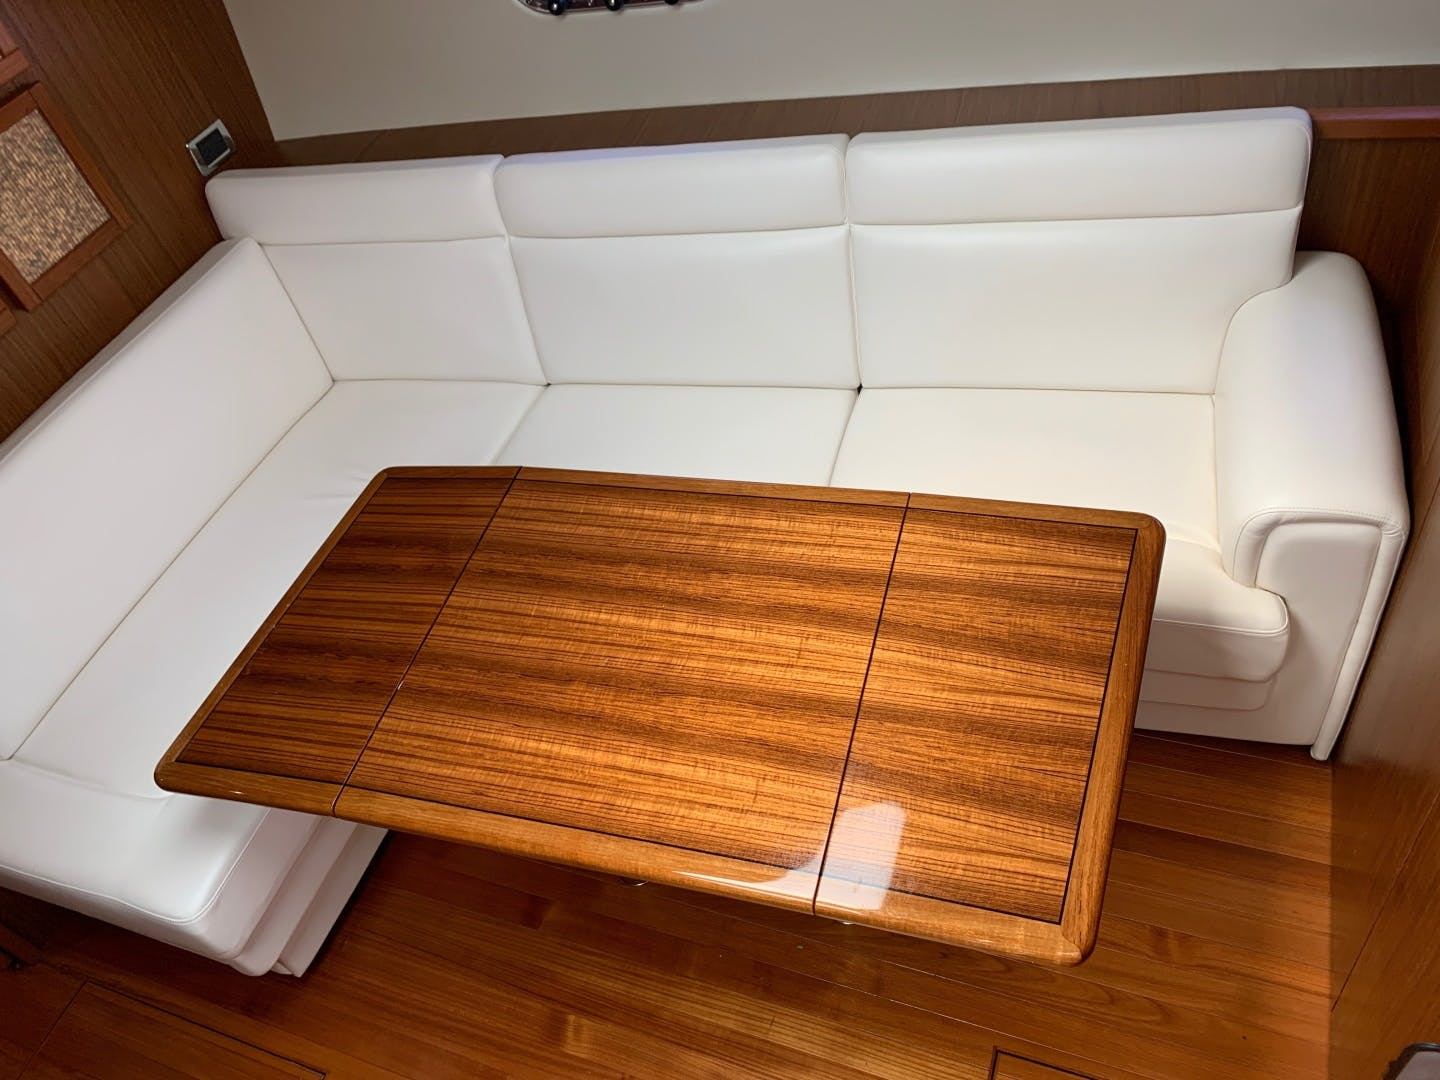 2015 Tiara Yachts 45' 45 Sovran Captain's Choice | Picture 8 of 57